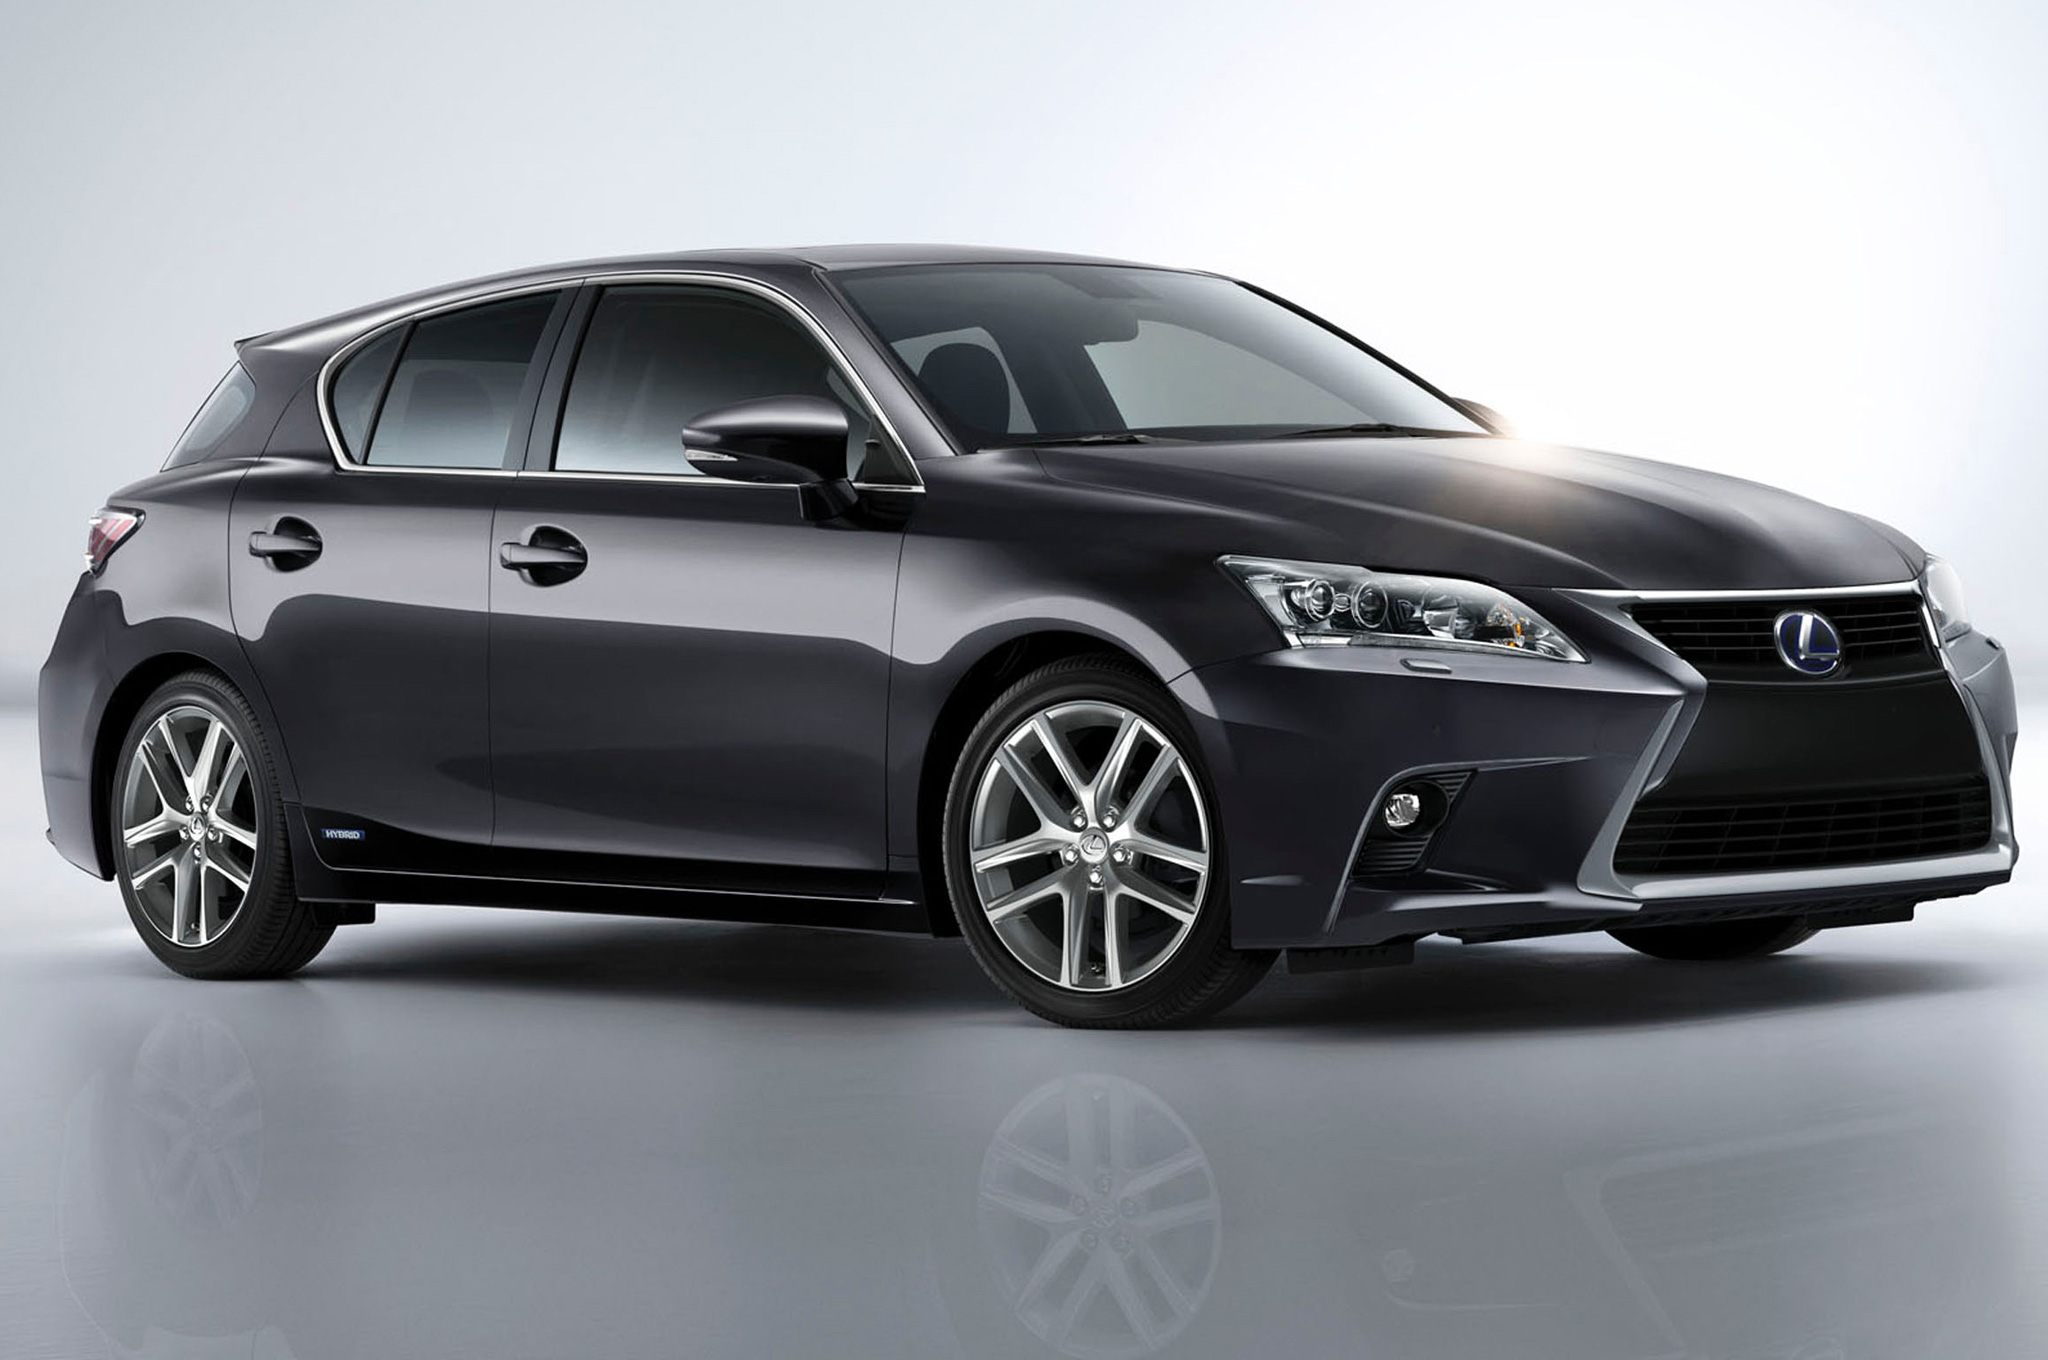 Elegant Refreshed 2014 Lexus CT 200h Priced At $32,960